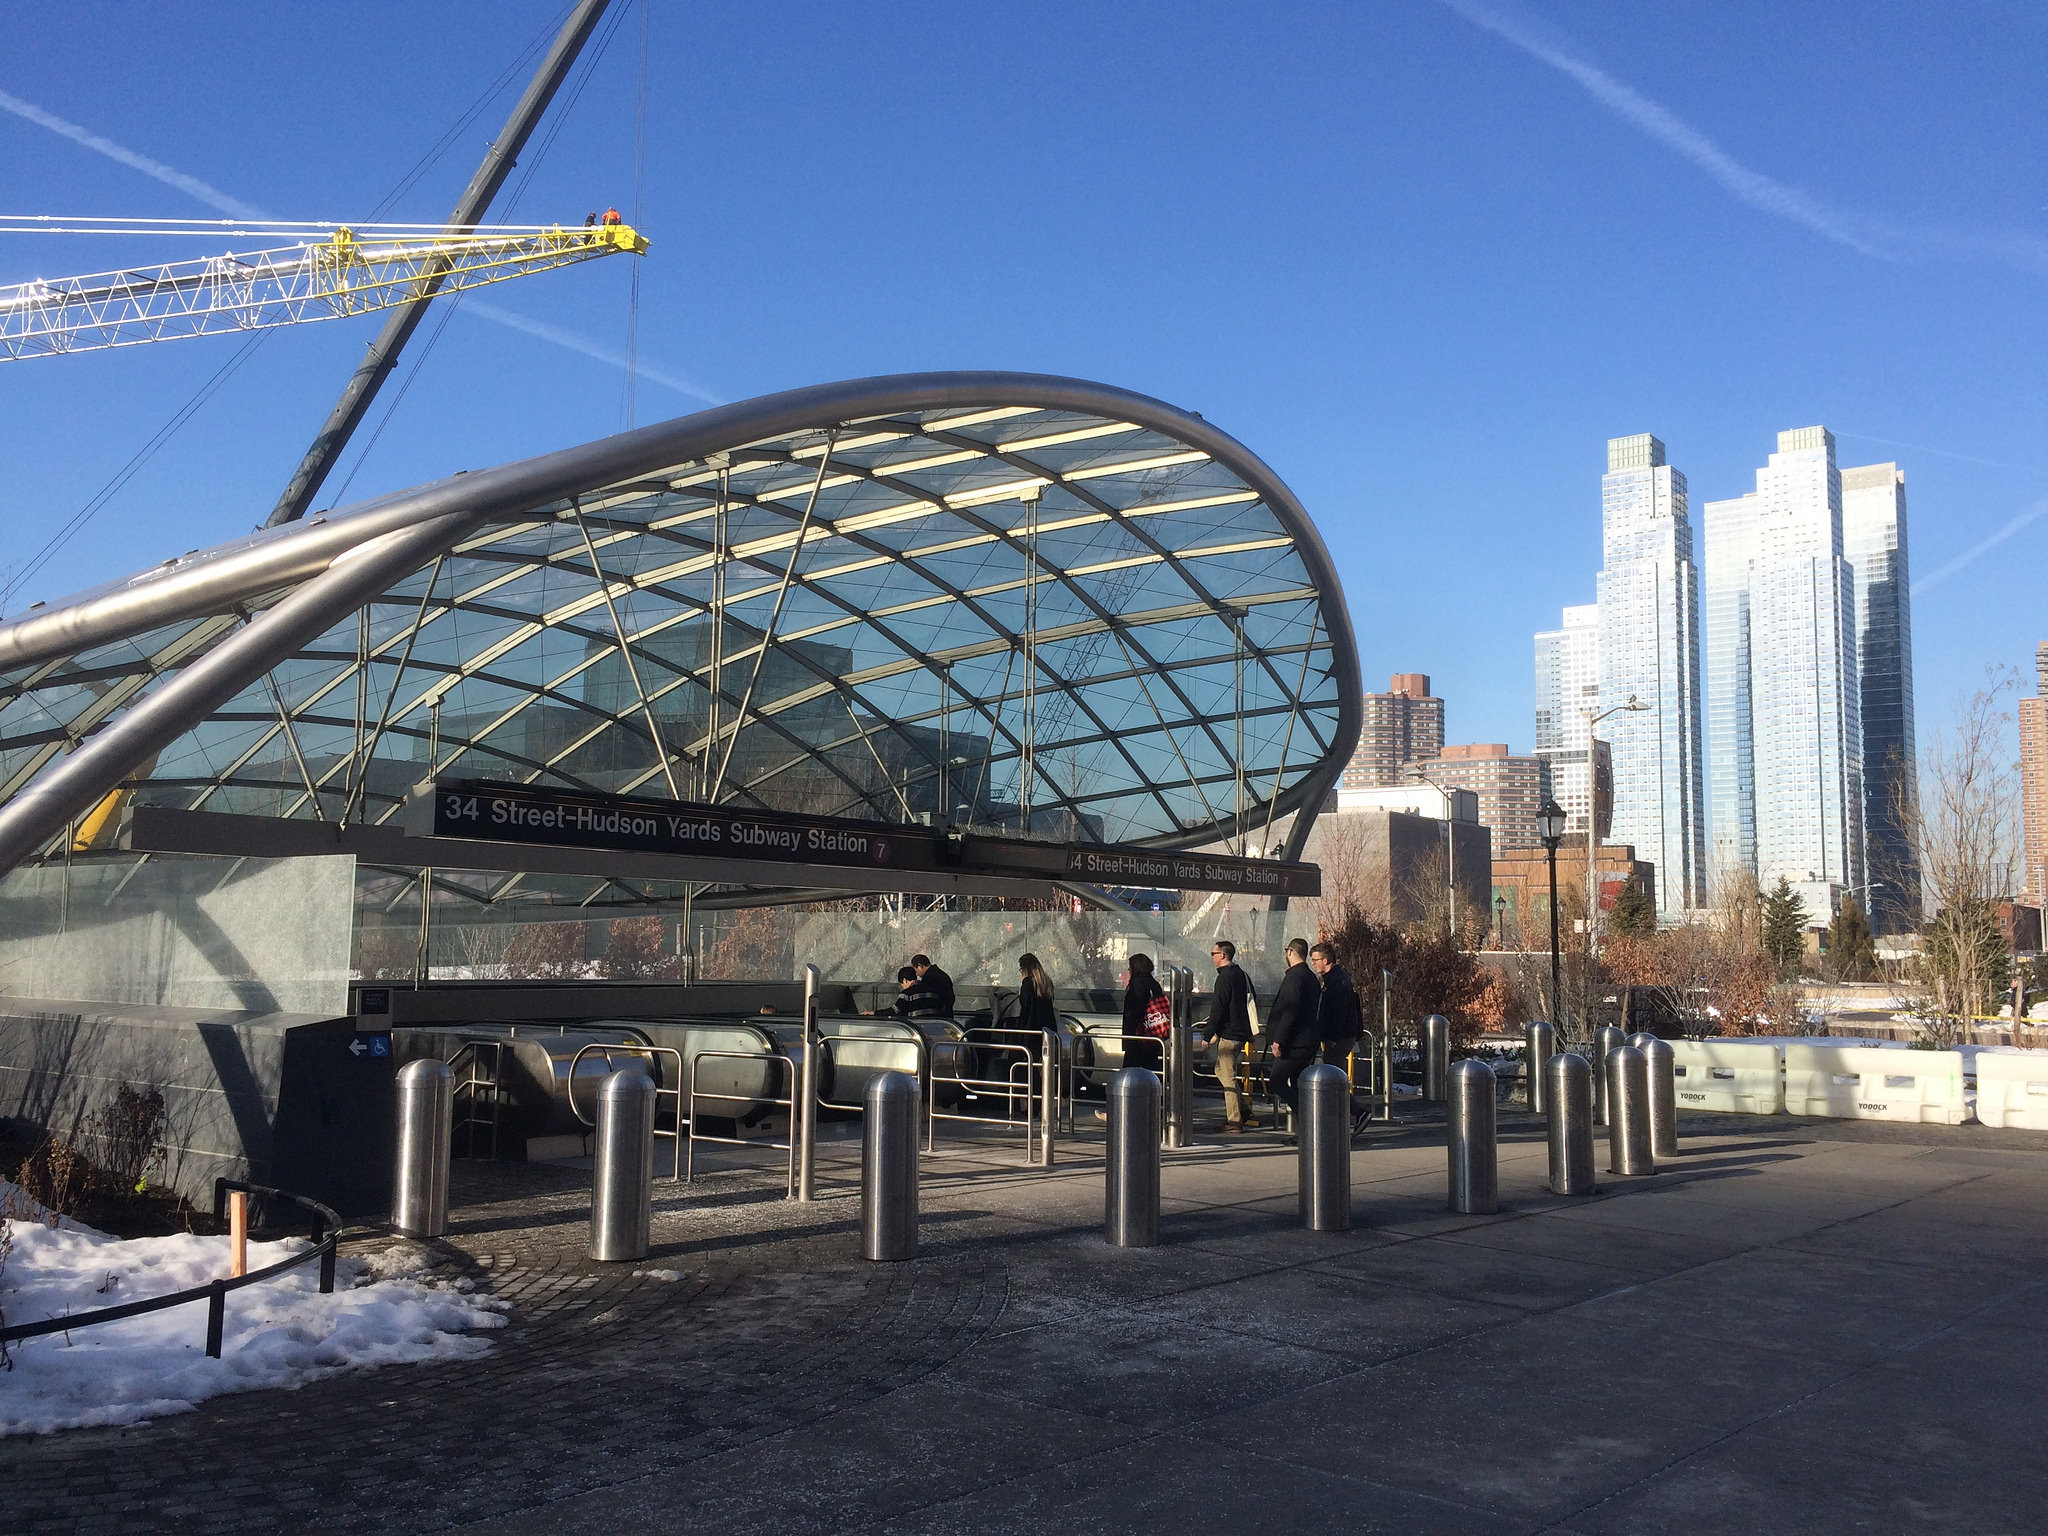 Hudson Yards condo developments rise above the new ritzy 7 train station.